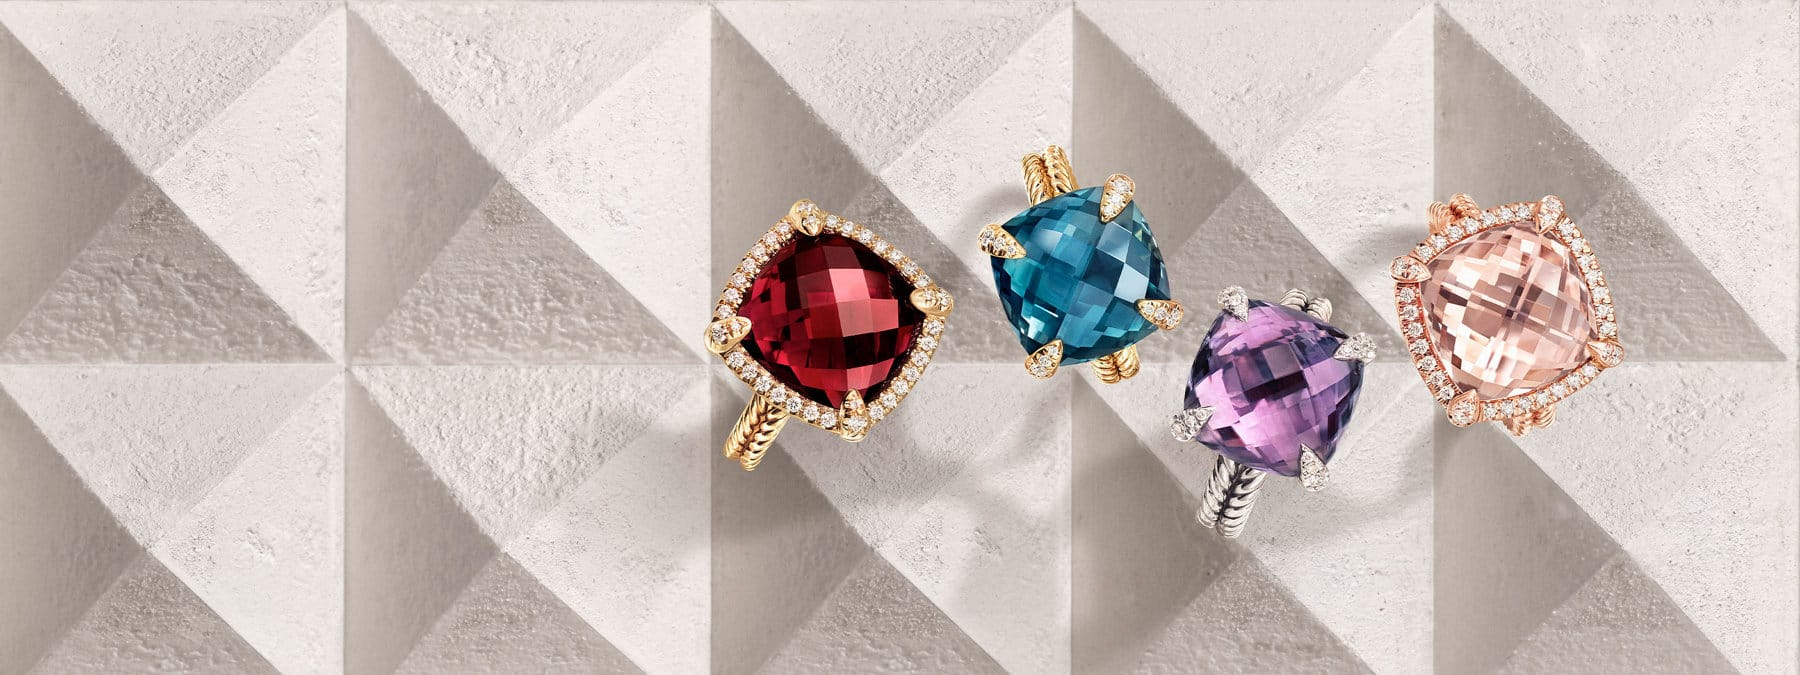 An overhead shot of a vertical stack of David Yurman Châtelaine rings placed atop a  beige-hued stone surface with pyramid-shaped protrusions. The women's jewelry is crafted from 18K yellow or rose gold or sterling silver with morganite, amethyst, blue topaz or garnet center stones surrounded by bezels or prongs set with pavé white diamonds.